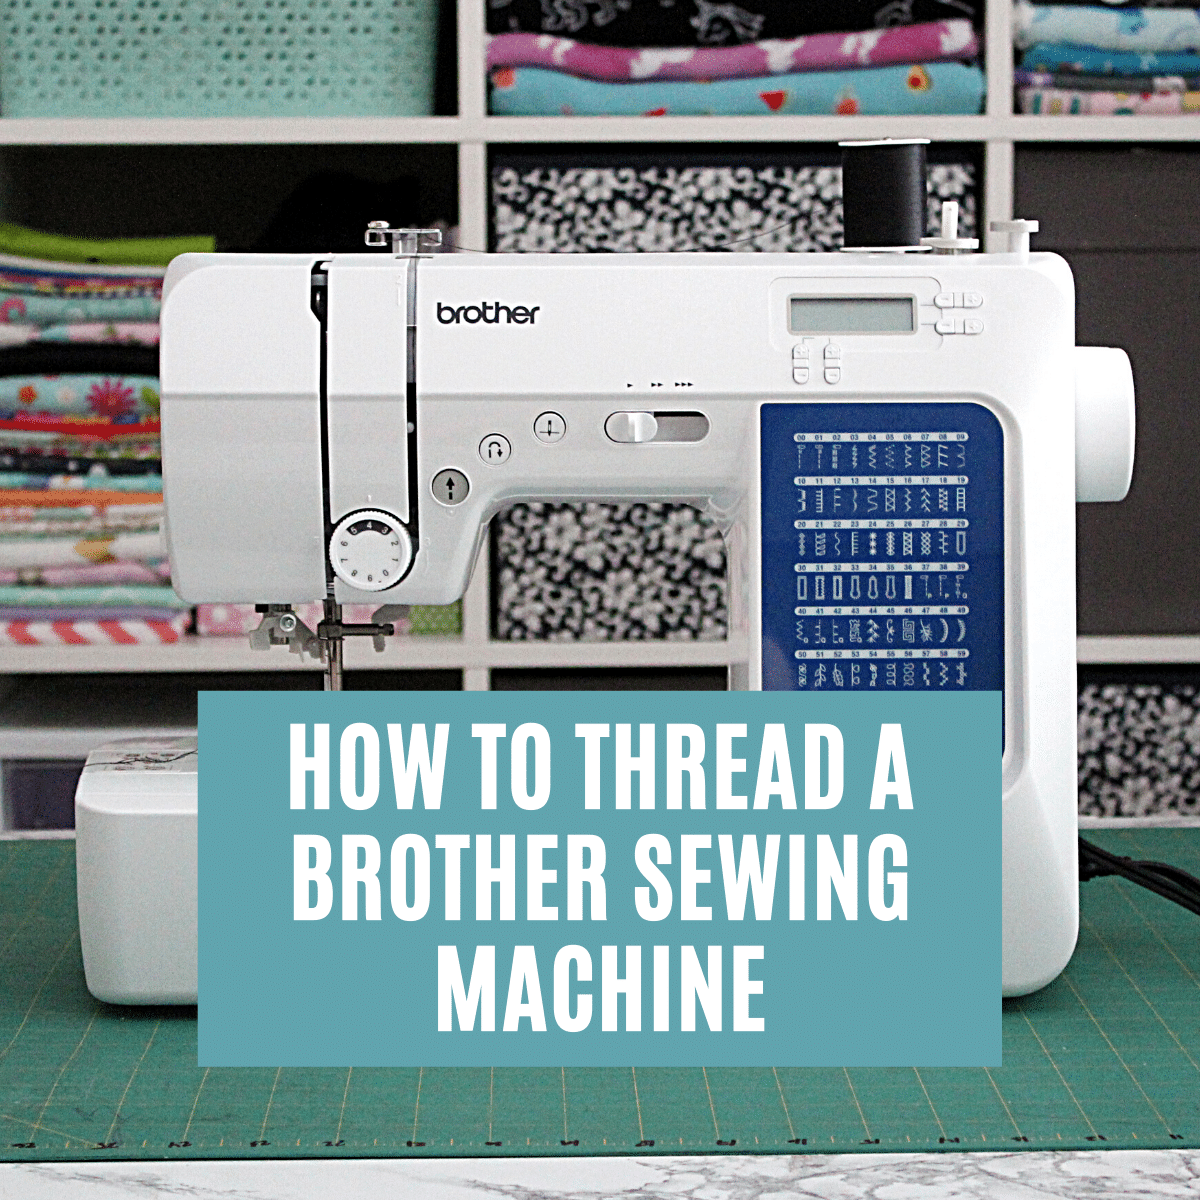 How to Thread a Brother Sewing Machine (Step-by-Step)